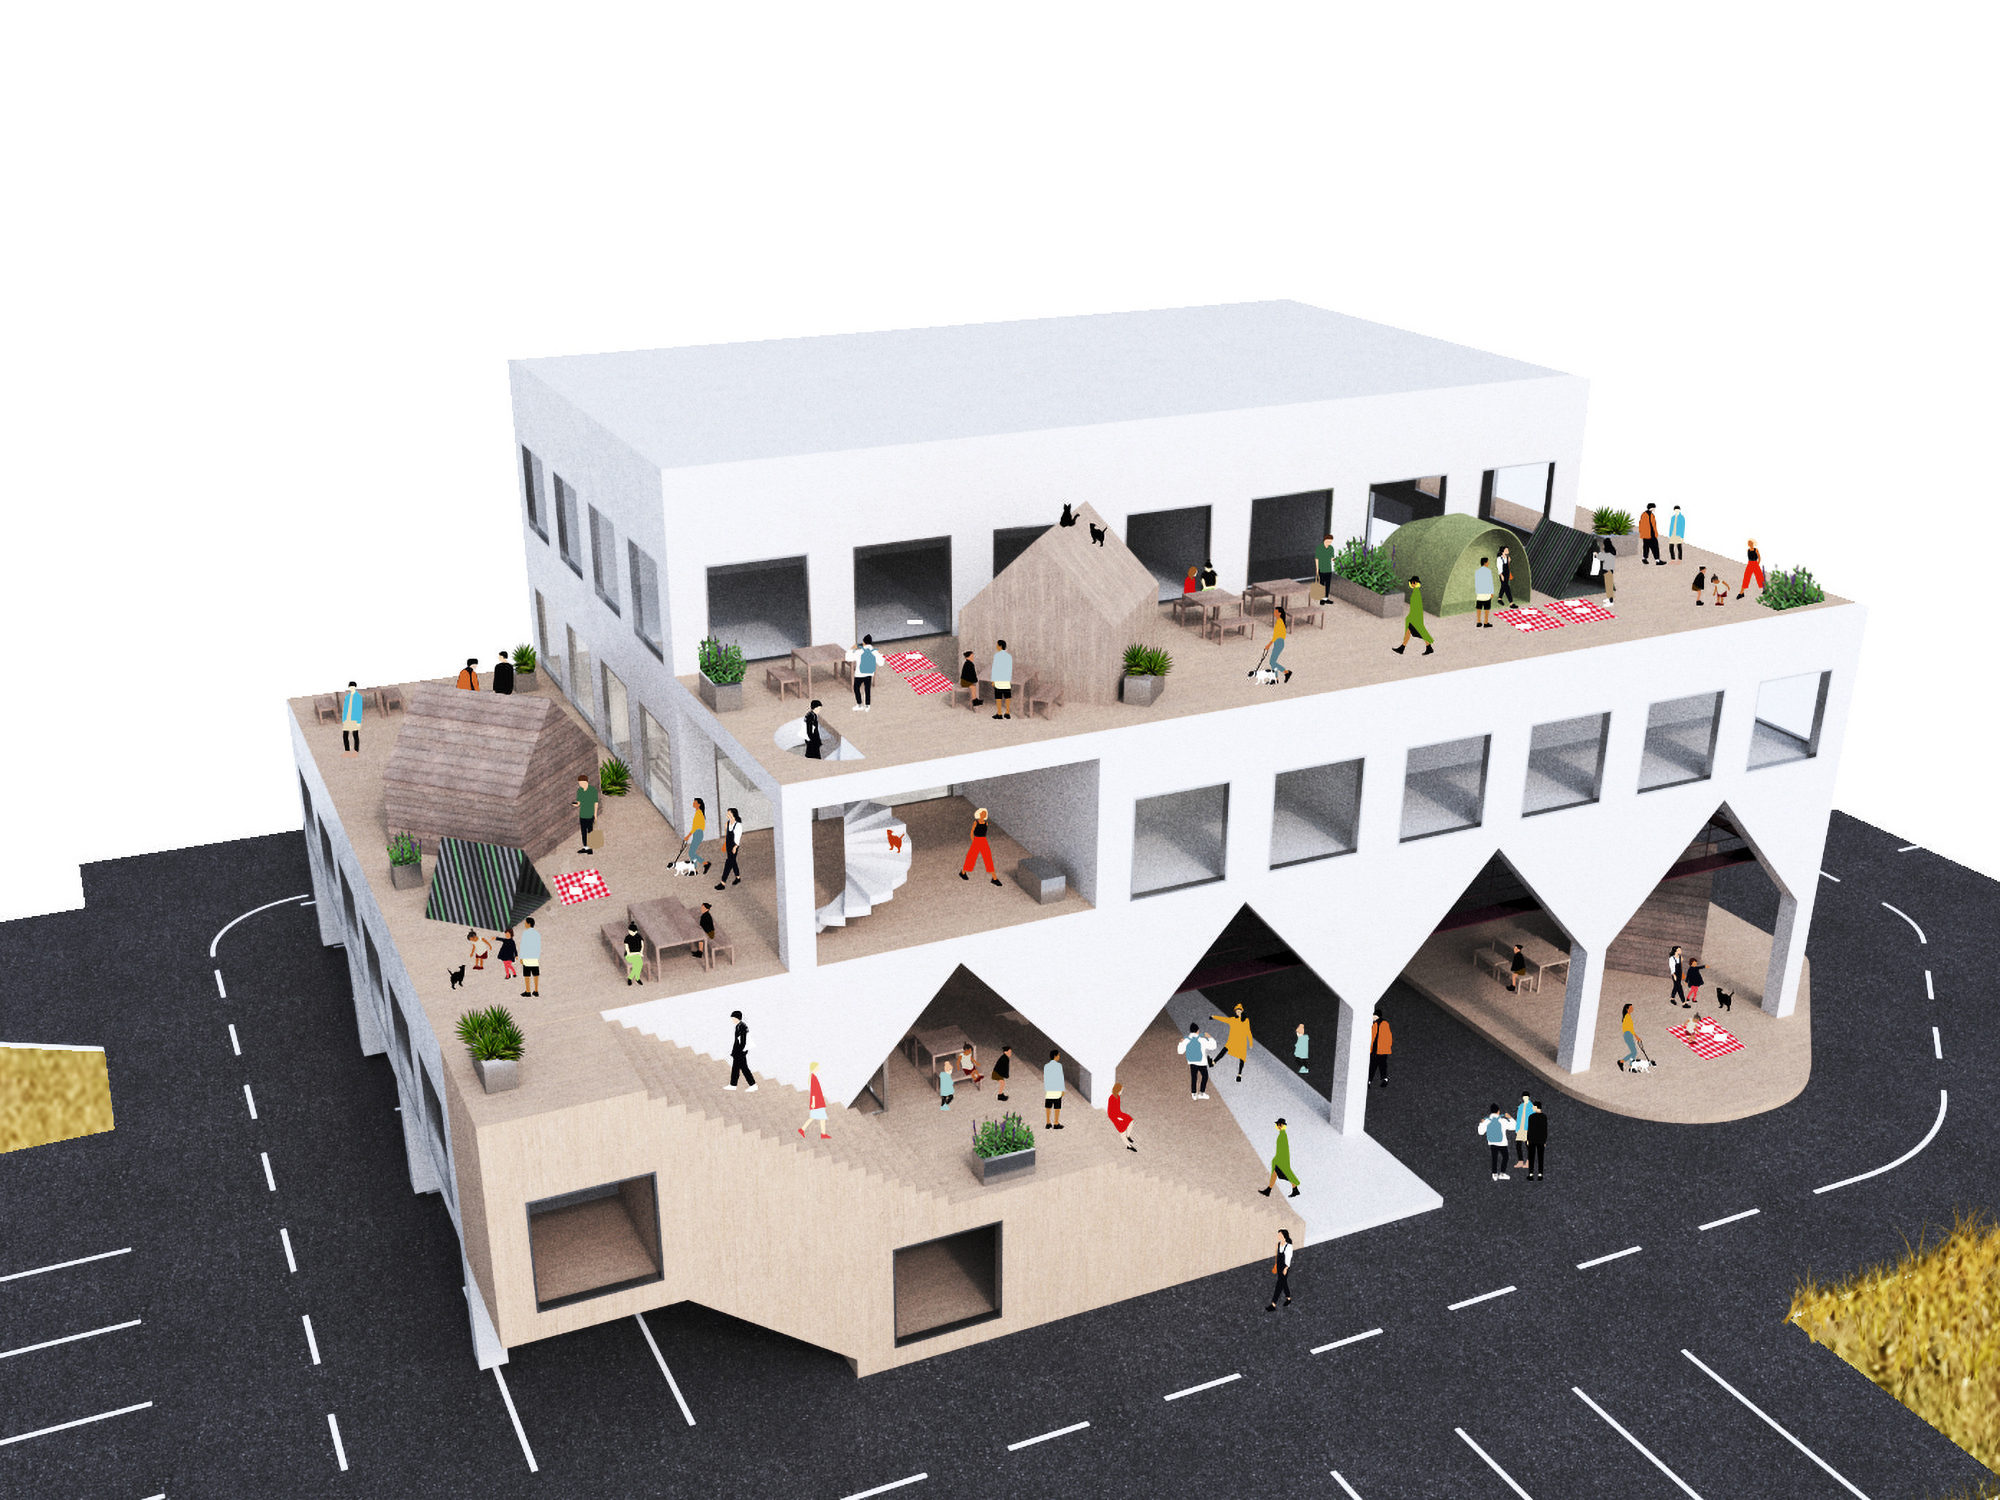 Hiroshima Kumano Cho Community Center Proposal Competition by Ko Nakamura Mosaic Design 熊野町防災センター プロポーザル 応募案 モザイクデザイン中村航